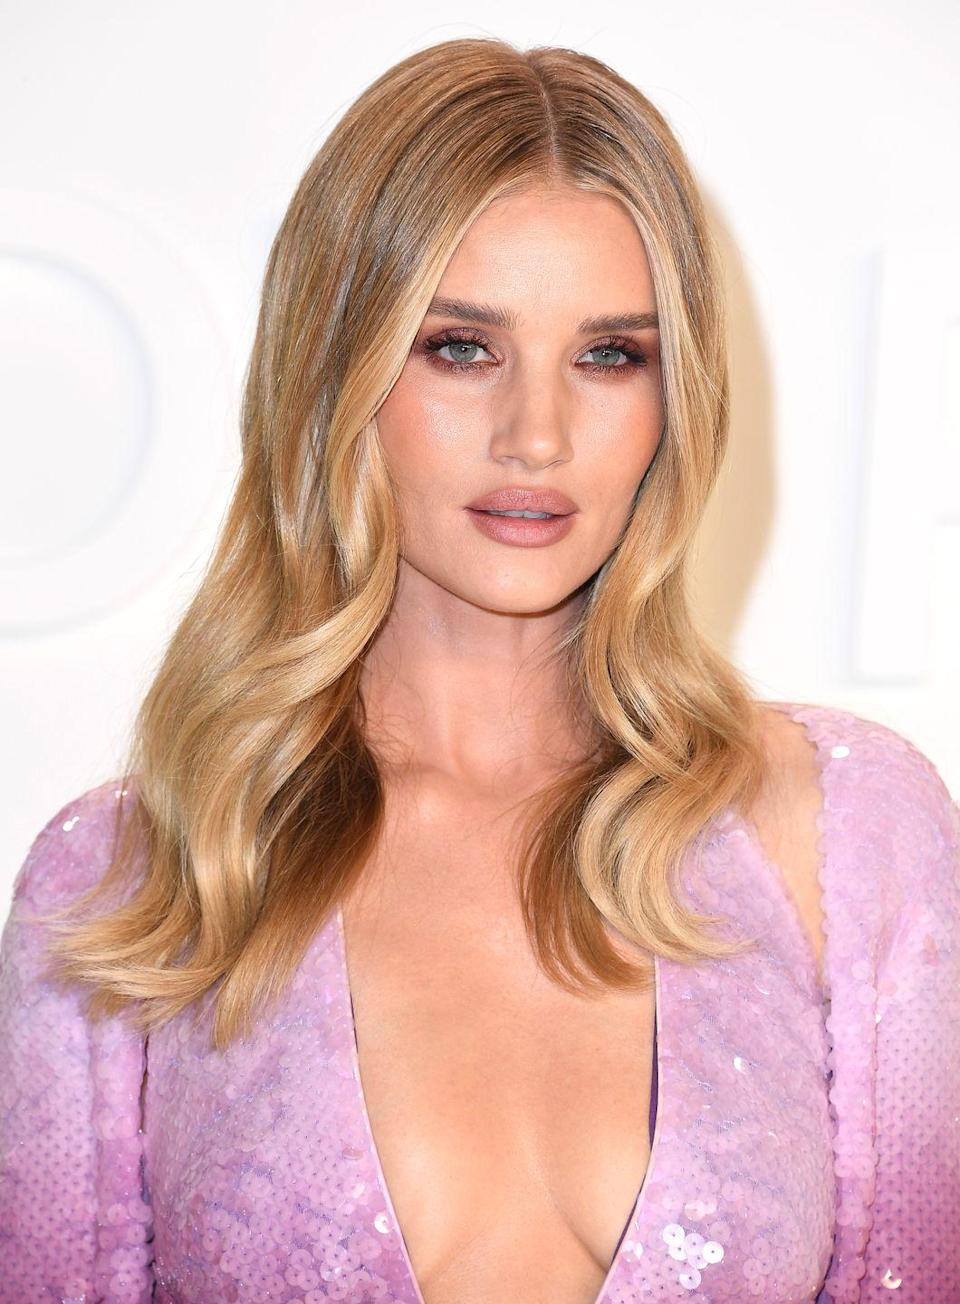 <p>Streaks of gold are bound to appear each fall season. A tried-and true go-to option for those looking to brighten up rather than tone down their strands, actress <strong>Rosie Huntington-Whiteley</strong> manages to make her hair pop!</p>